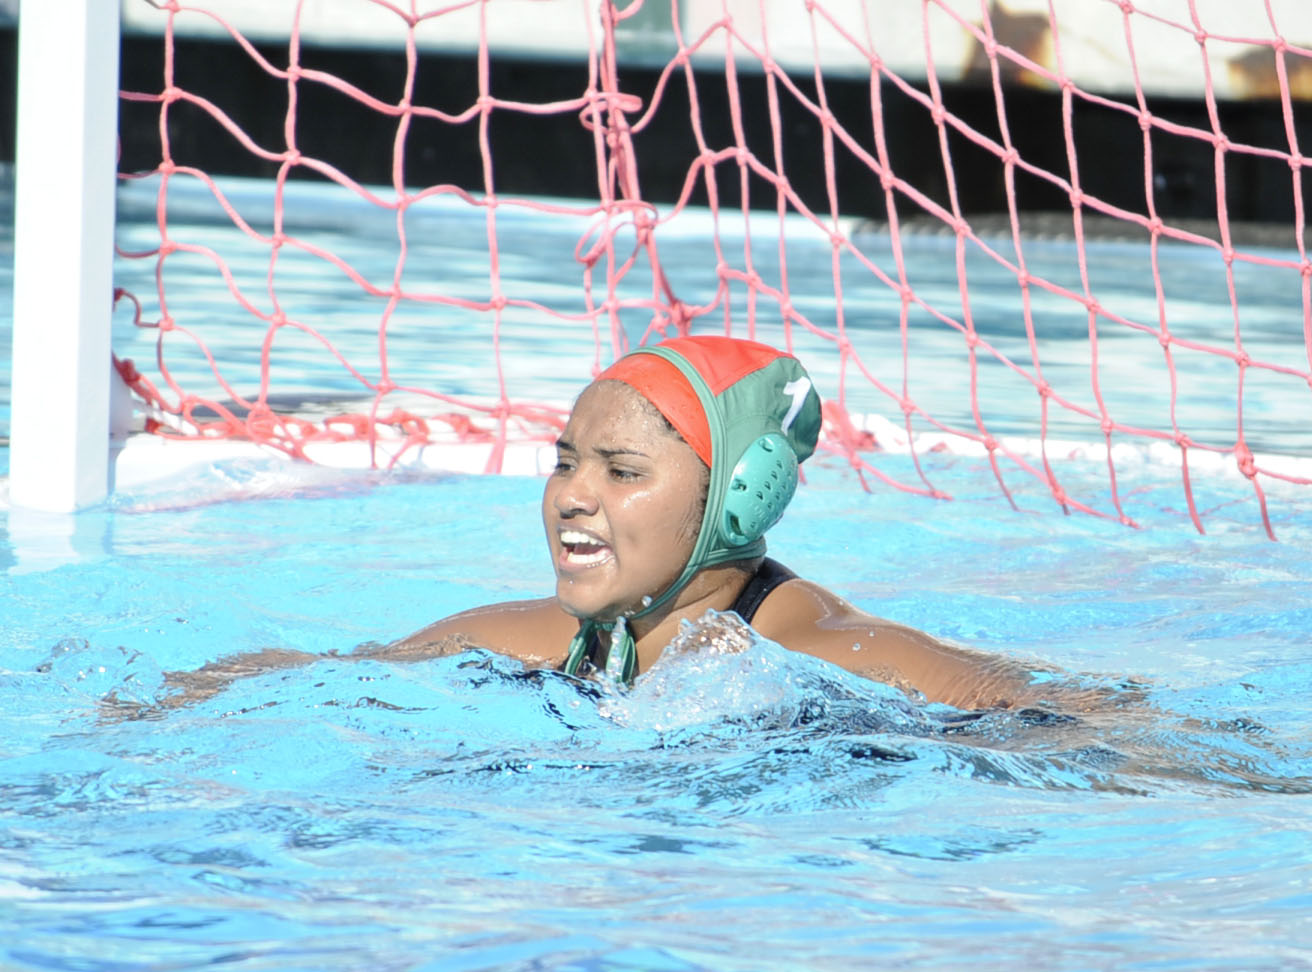 Freshman Alejandra Gazpar reacts after clearing a goal. Gazpar had 11 saves in a 21-10 win against Rio Hondo. (Photo by Tadzio Garcia.)